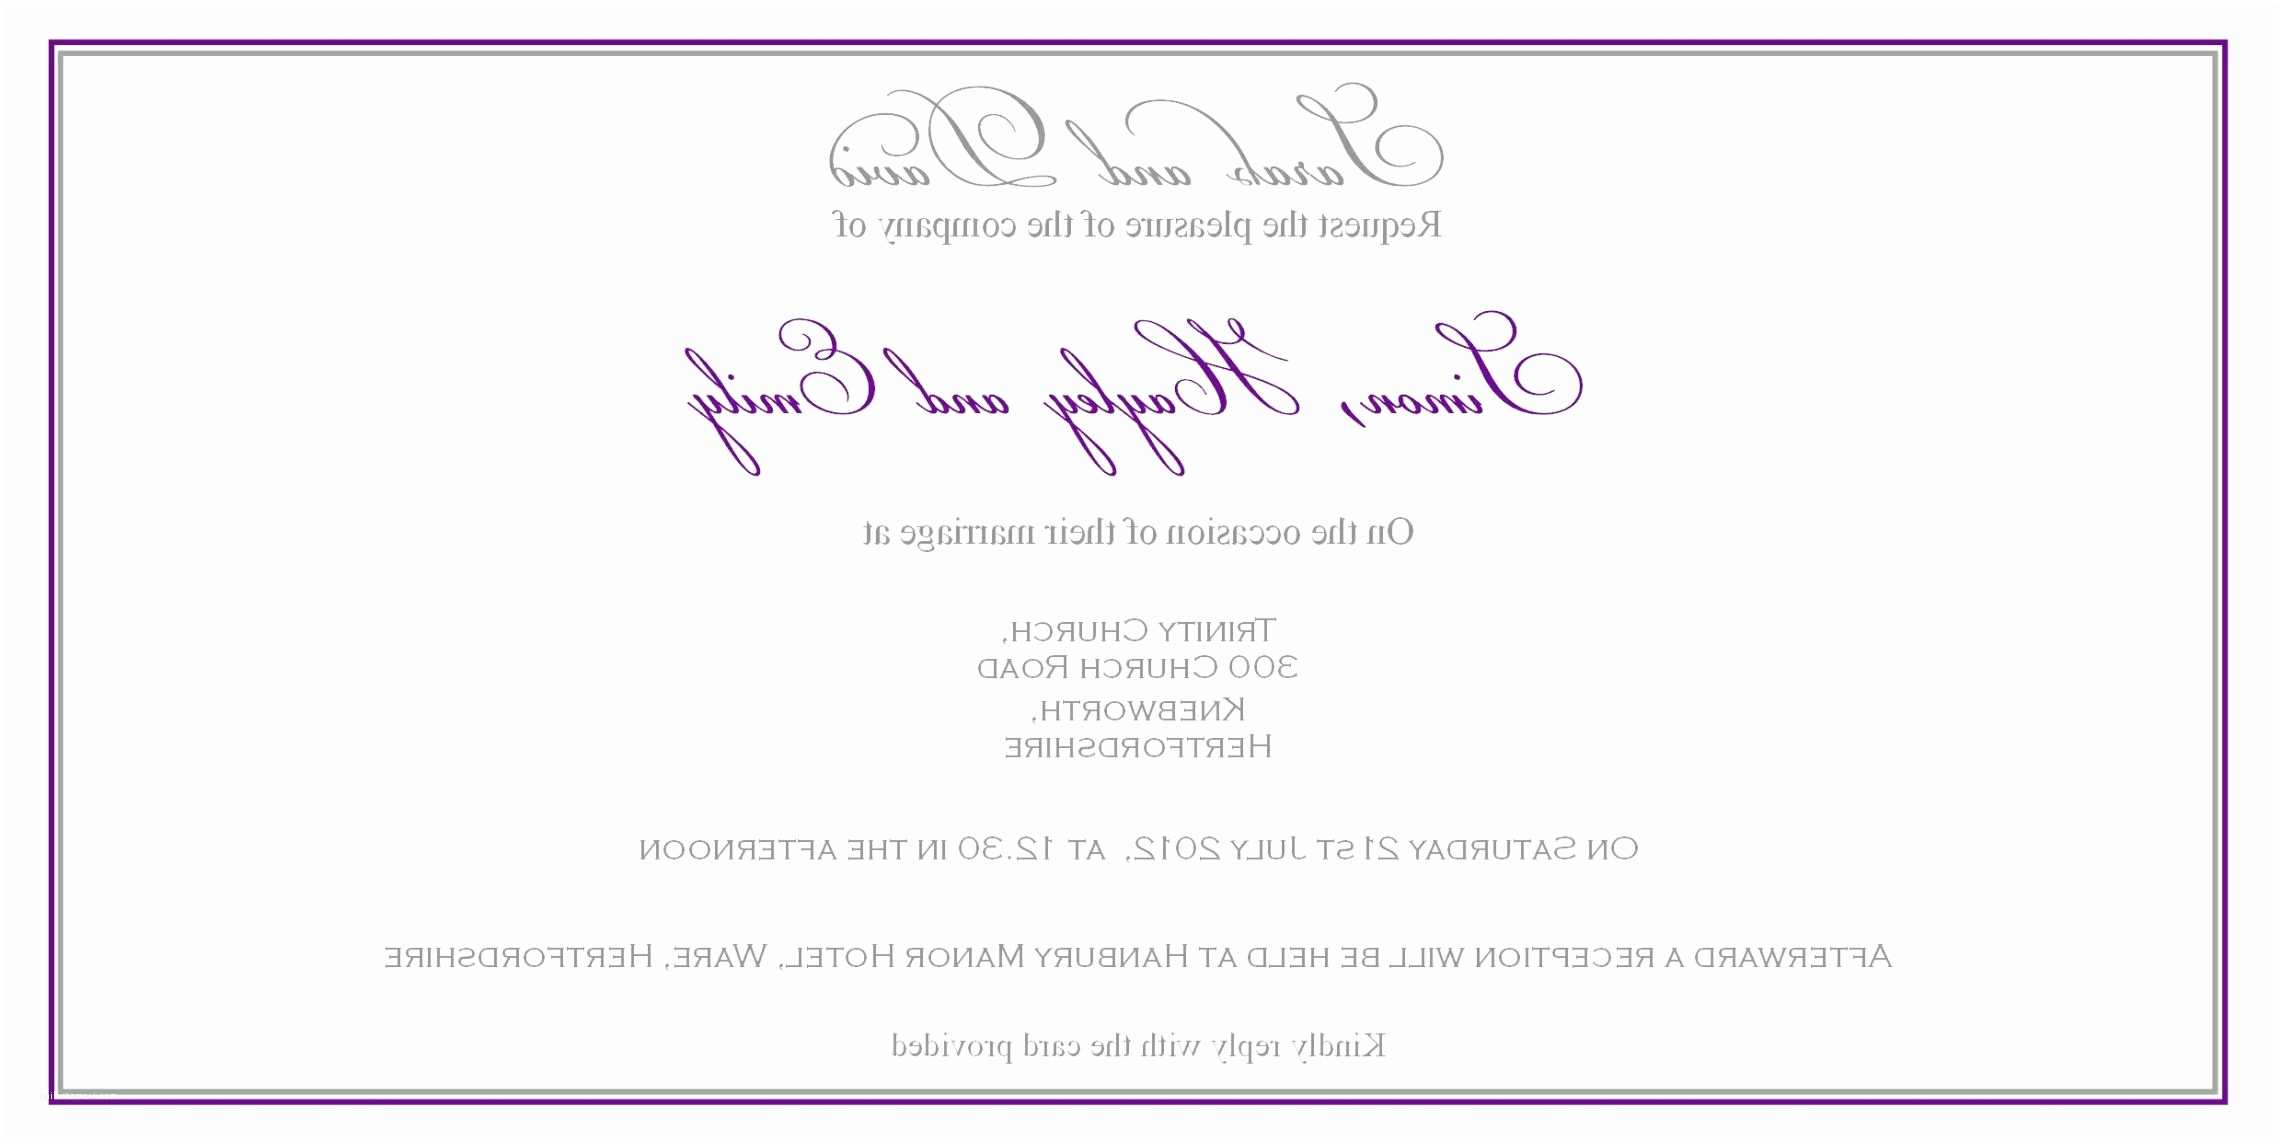 Beautiful Wedding Invitation Wording Beautiful Bride and Groom Wedding Invitations Wording 1